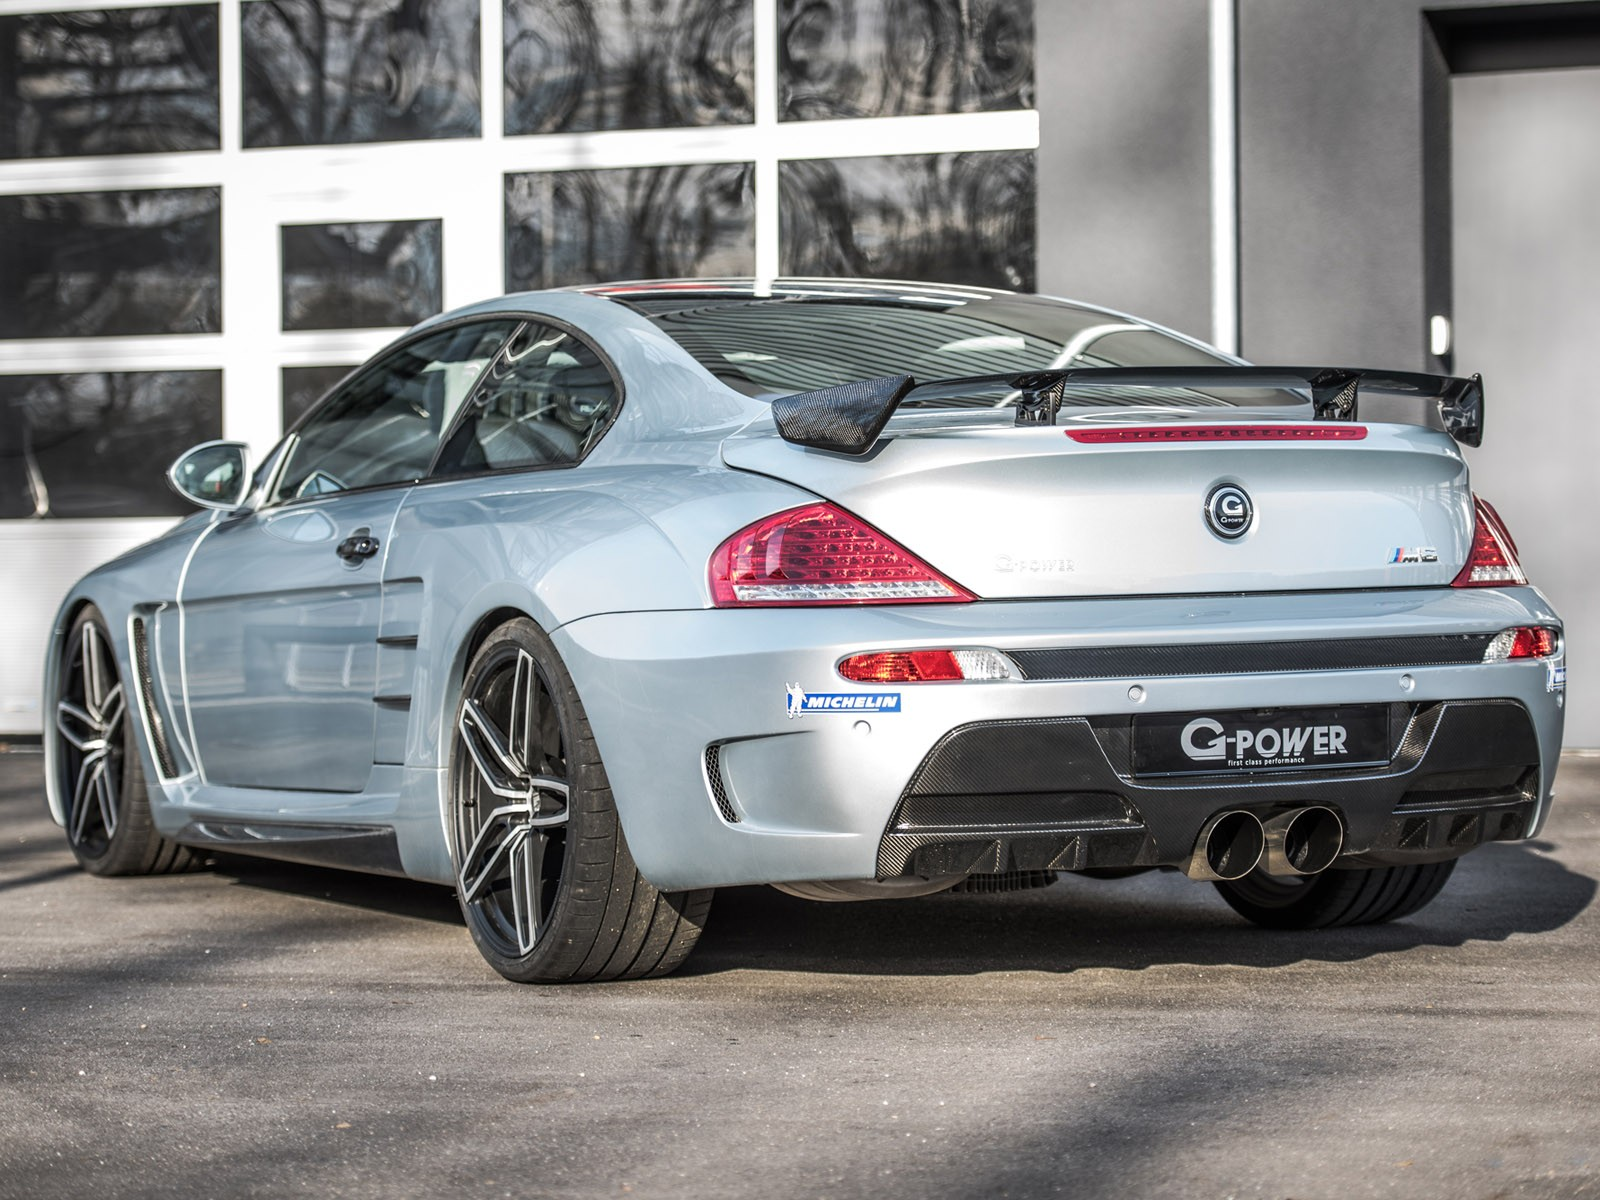 2015 G-power - Bmw M6 Hurricane CS Ultimate E63